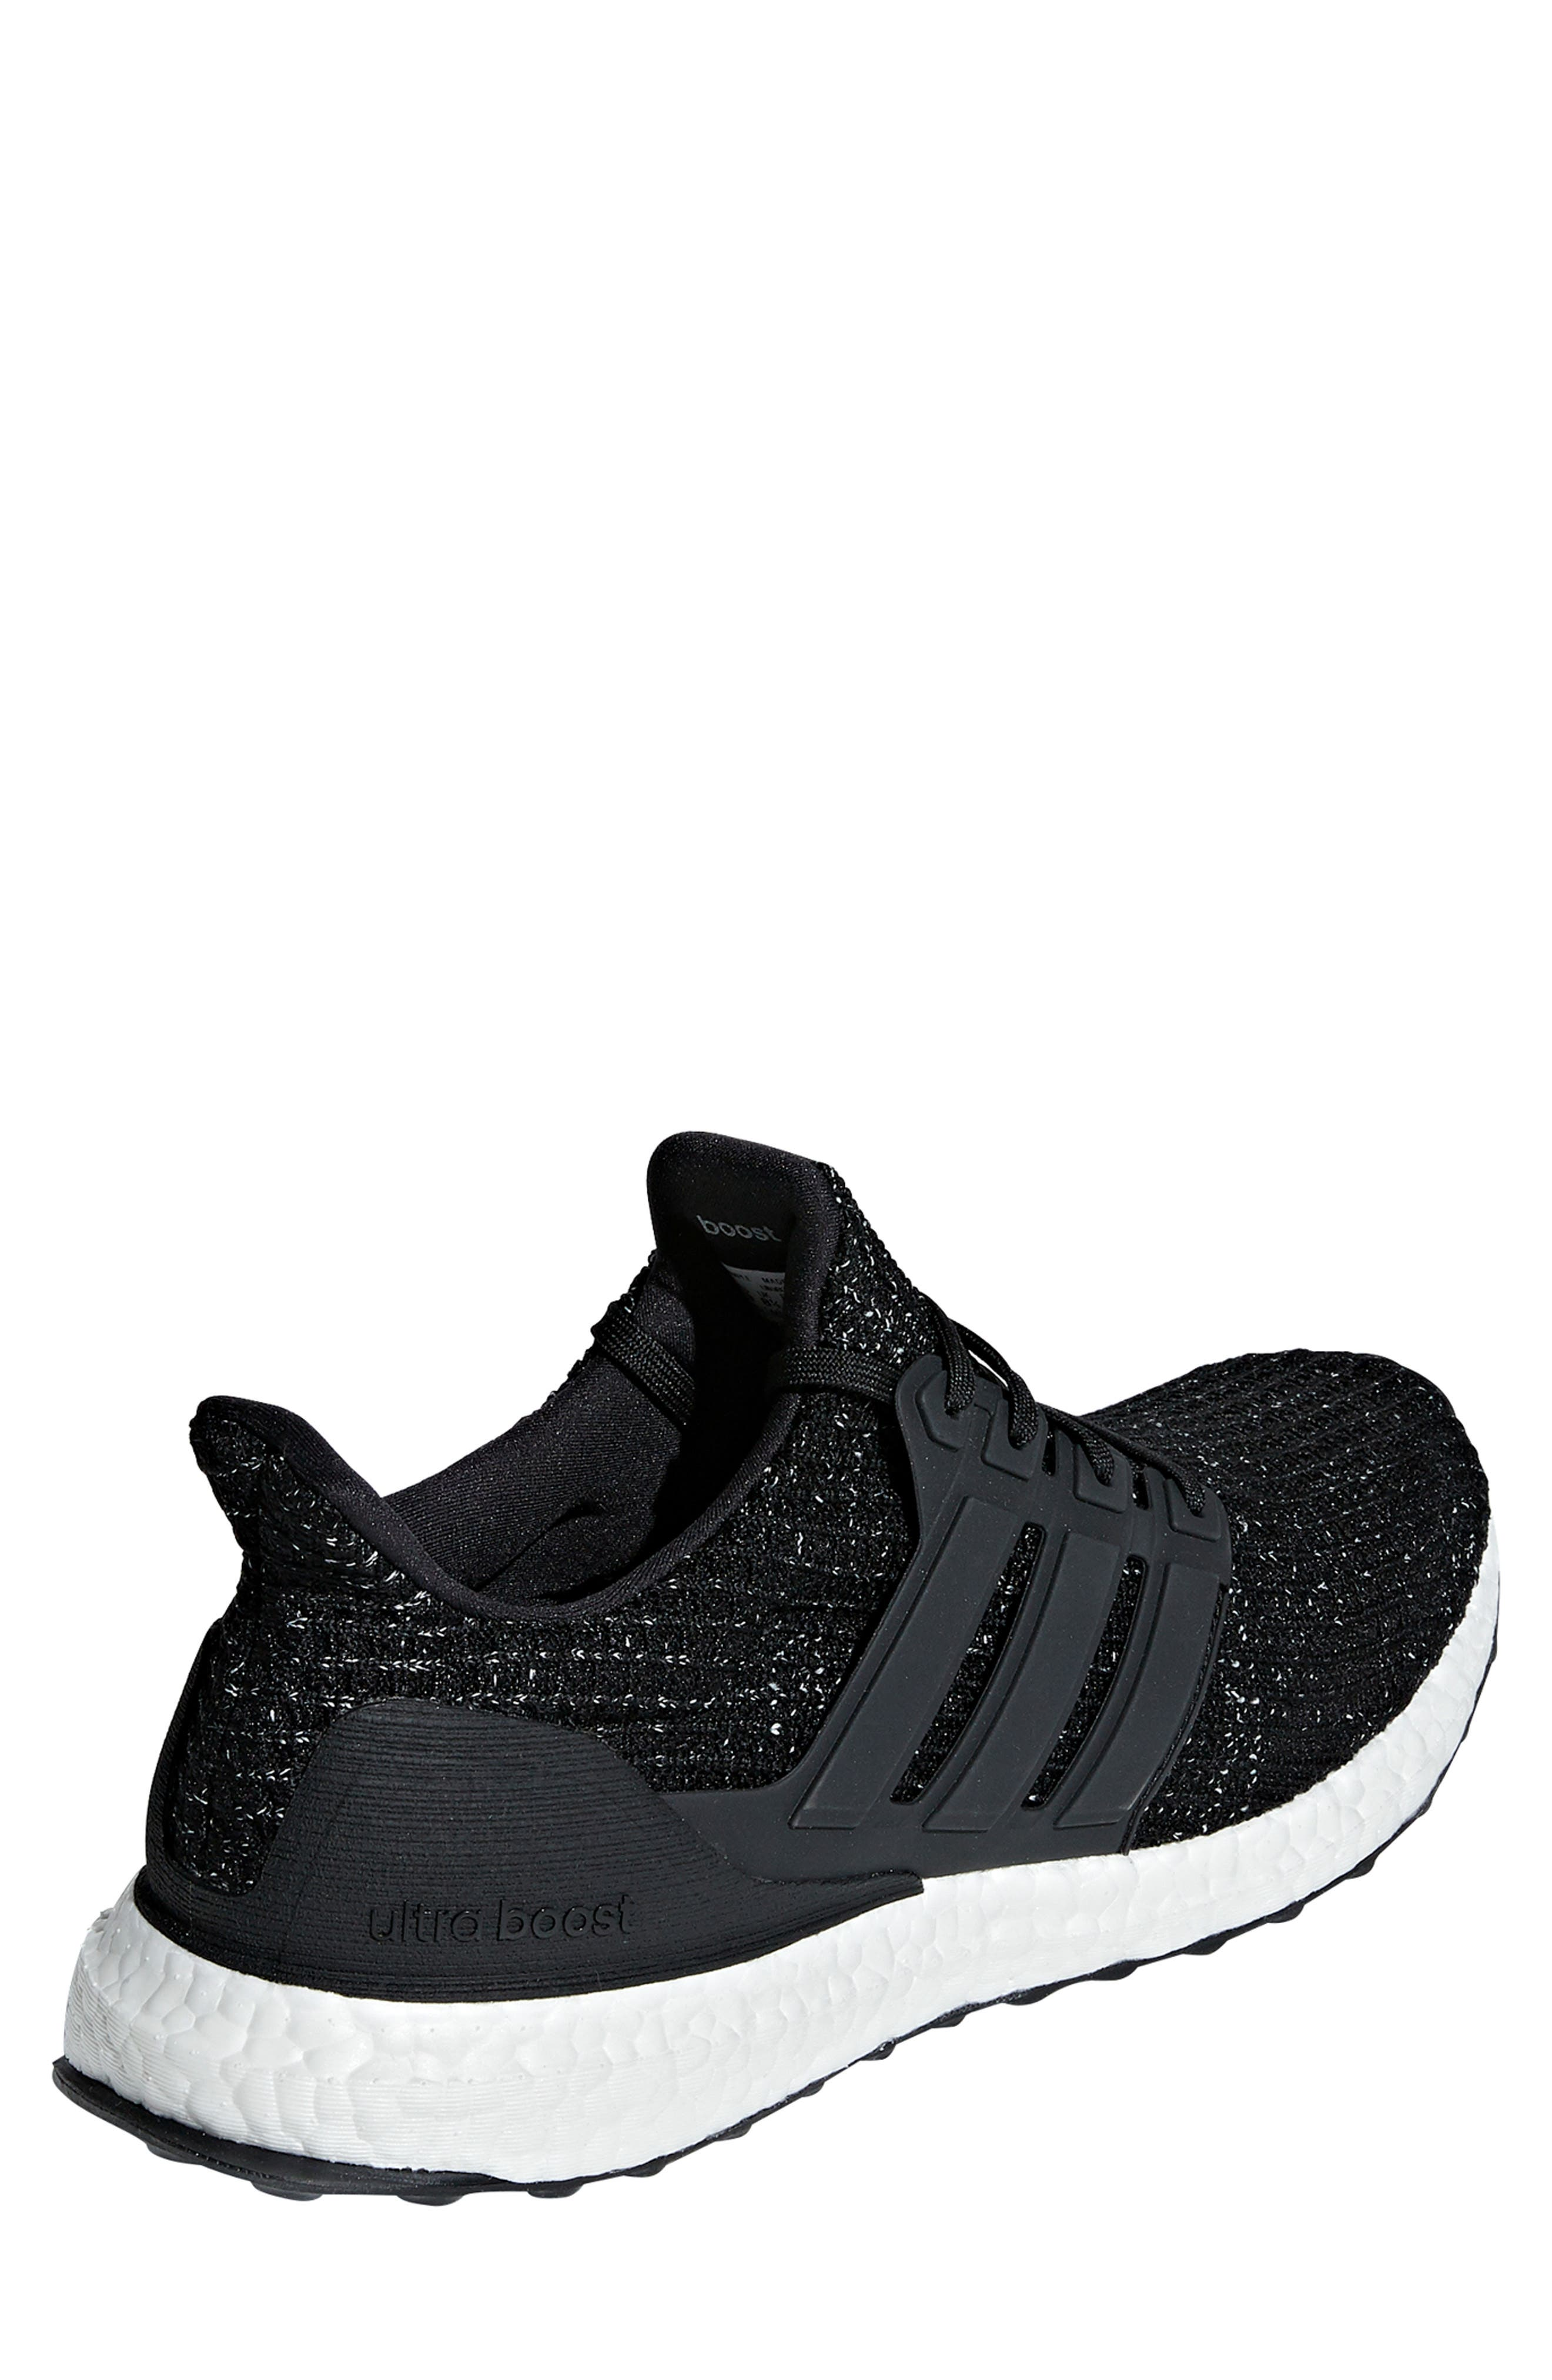 best sneakers f5827 e244e adidas Shoes, Running Shoes   Sneakers for Men   Nordstrom